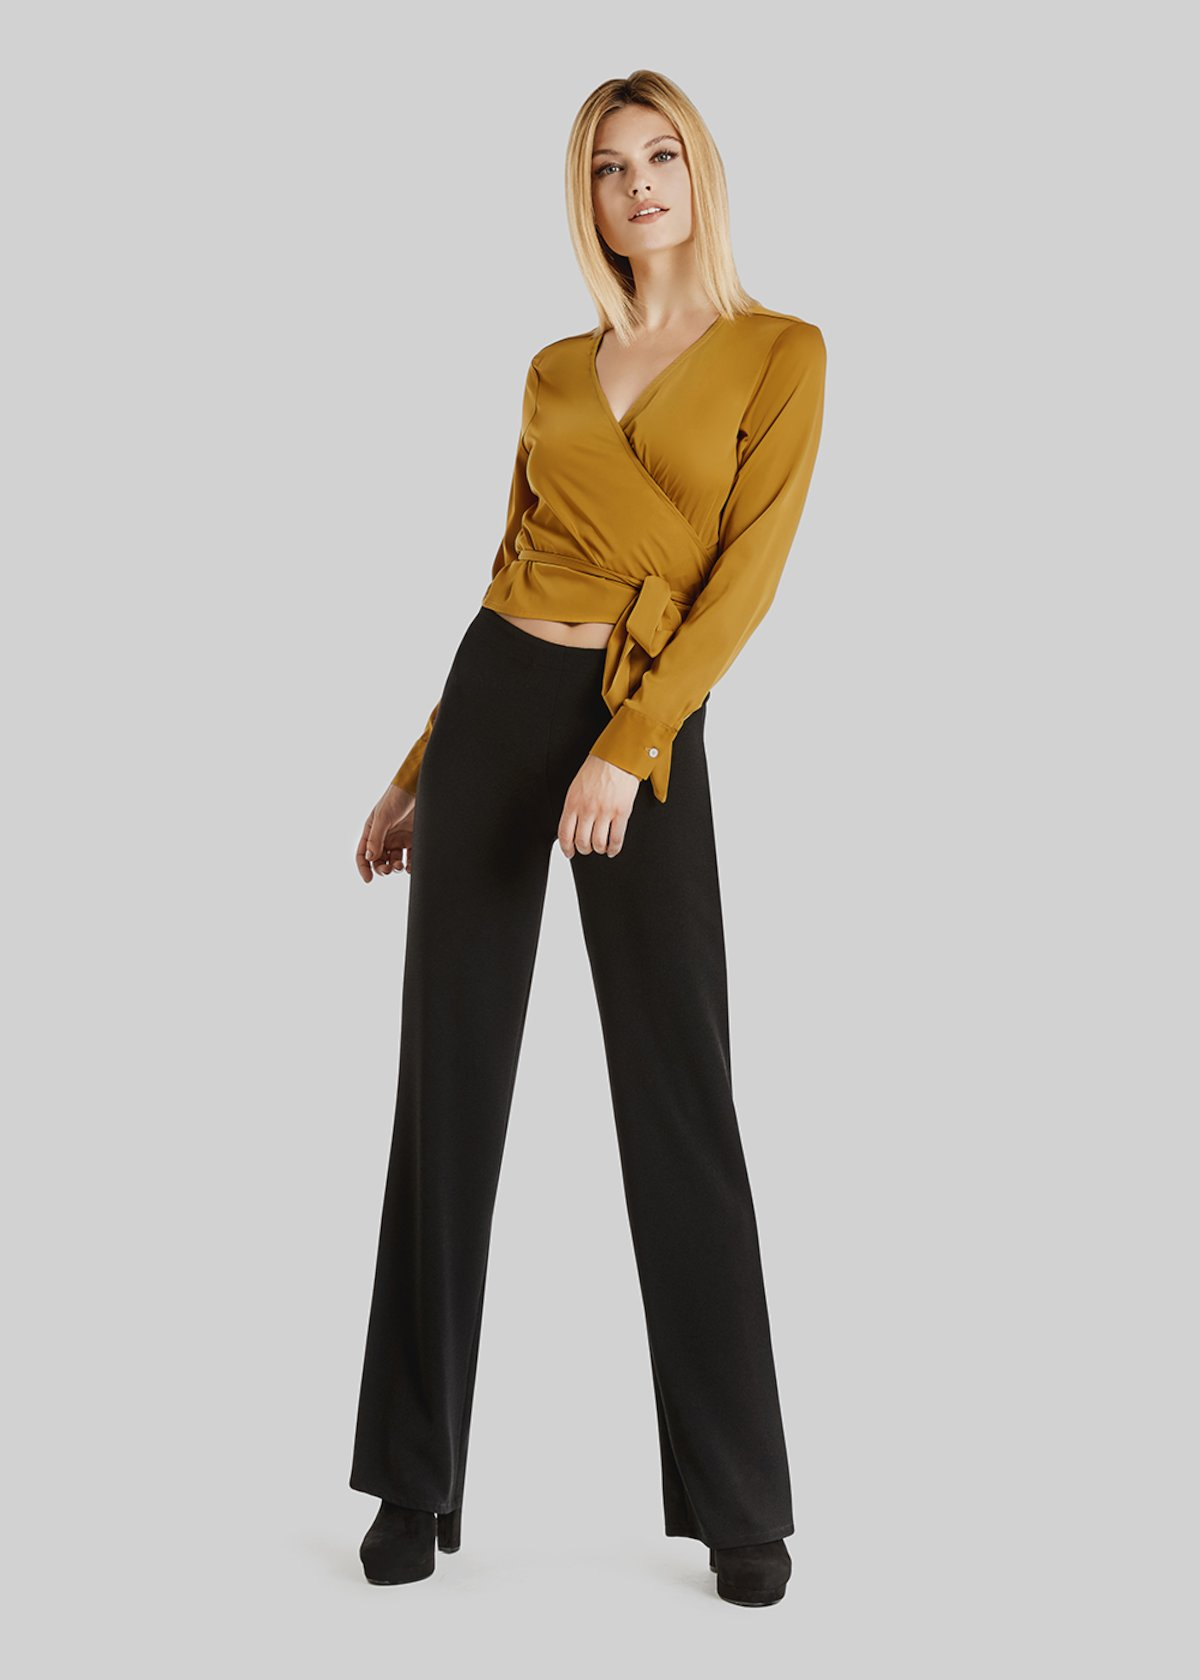 Paloma crepe palazzo trousers - Black - Woman - Category image